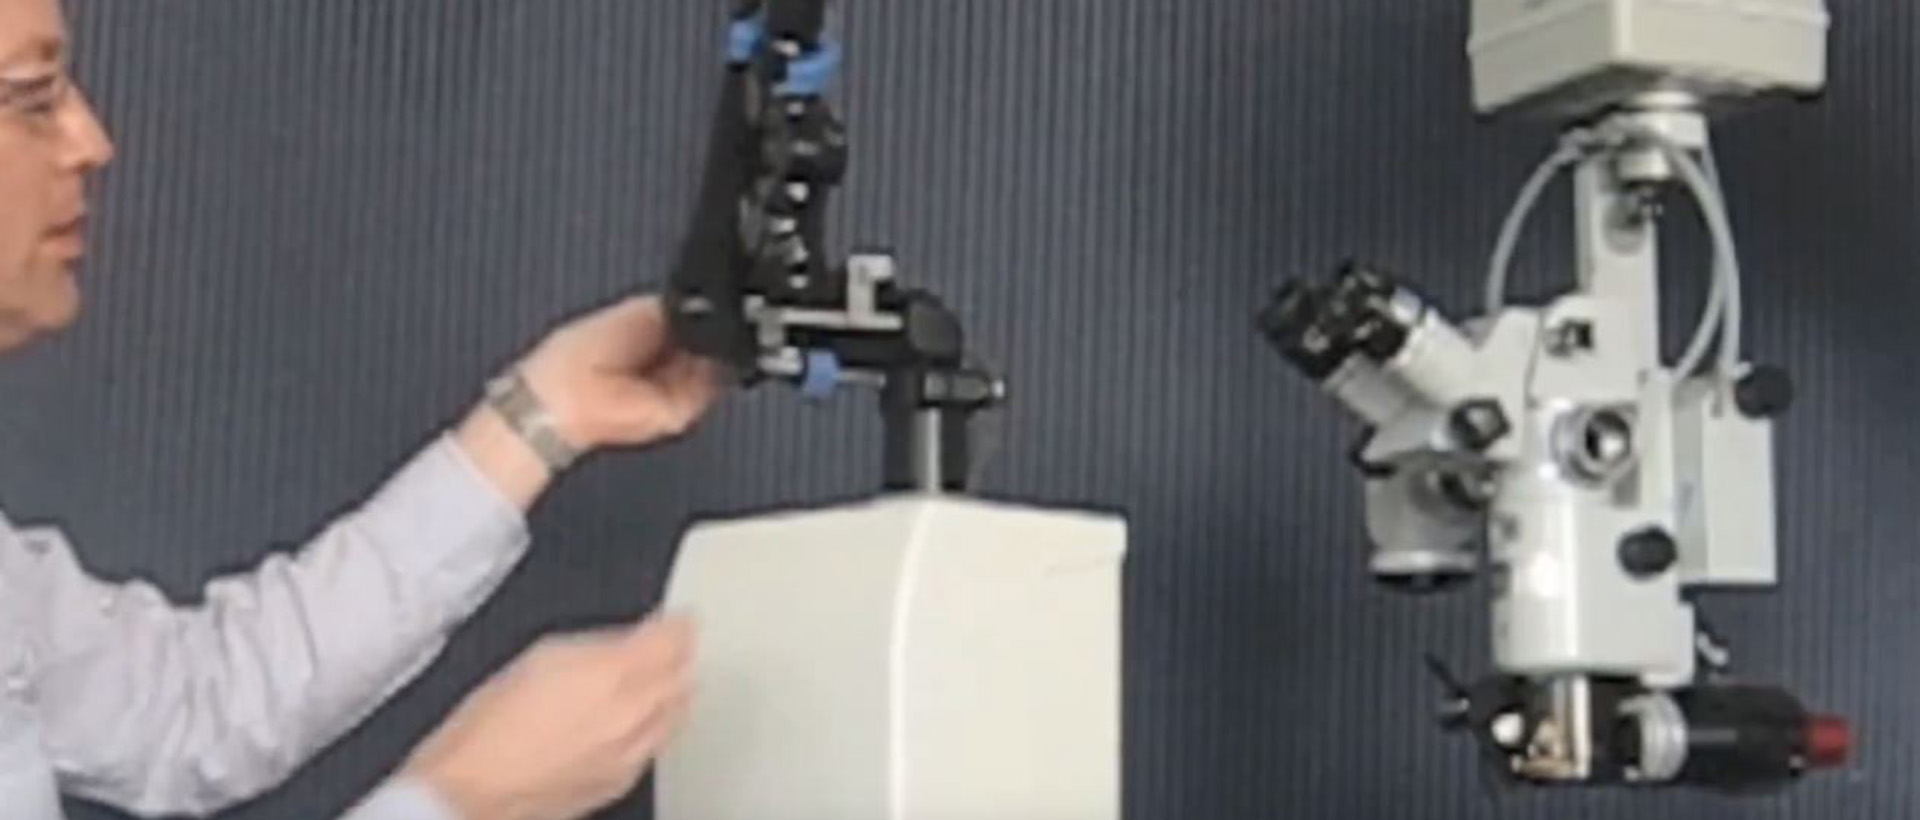 Surgical Laser Systems - micromanipulators video